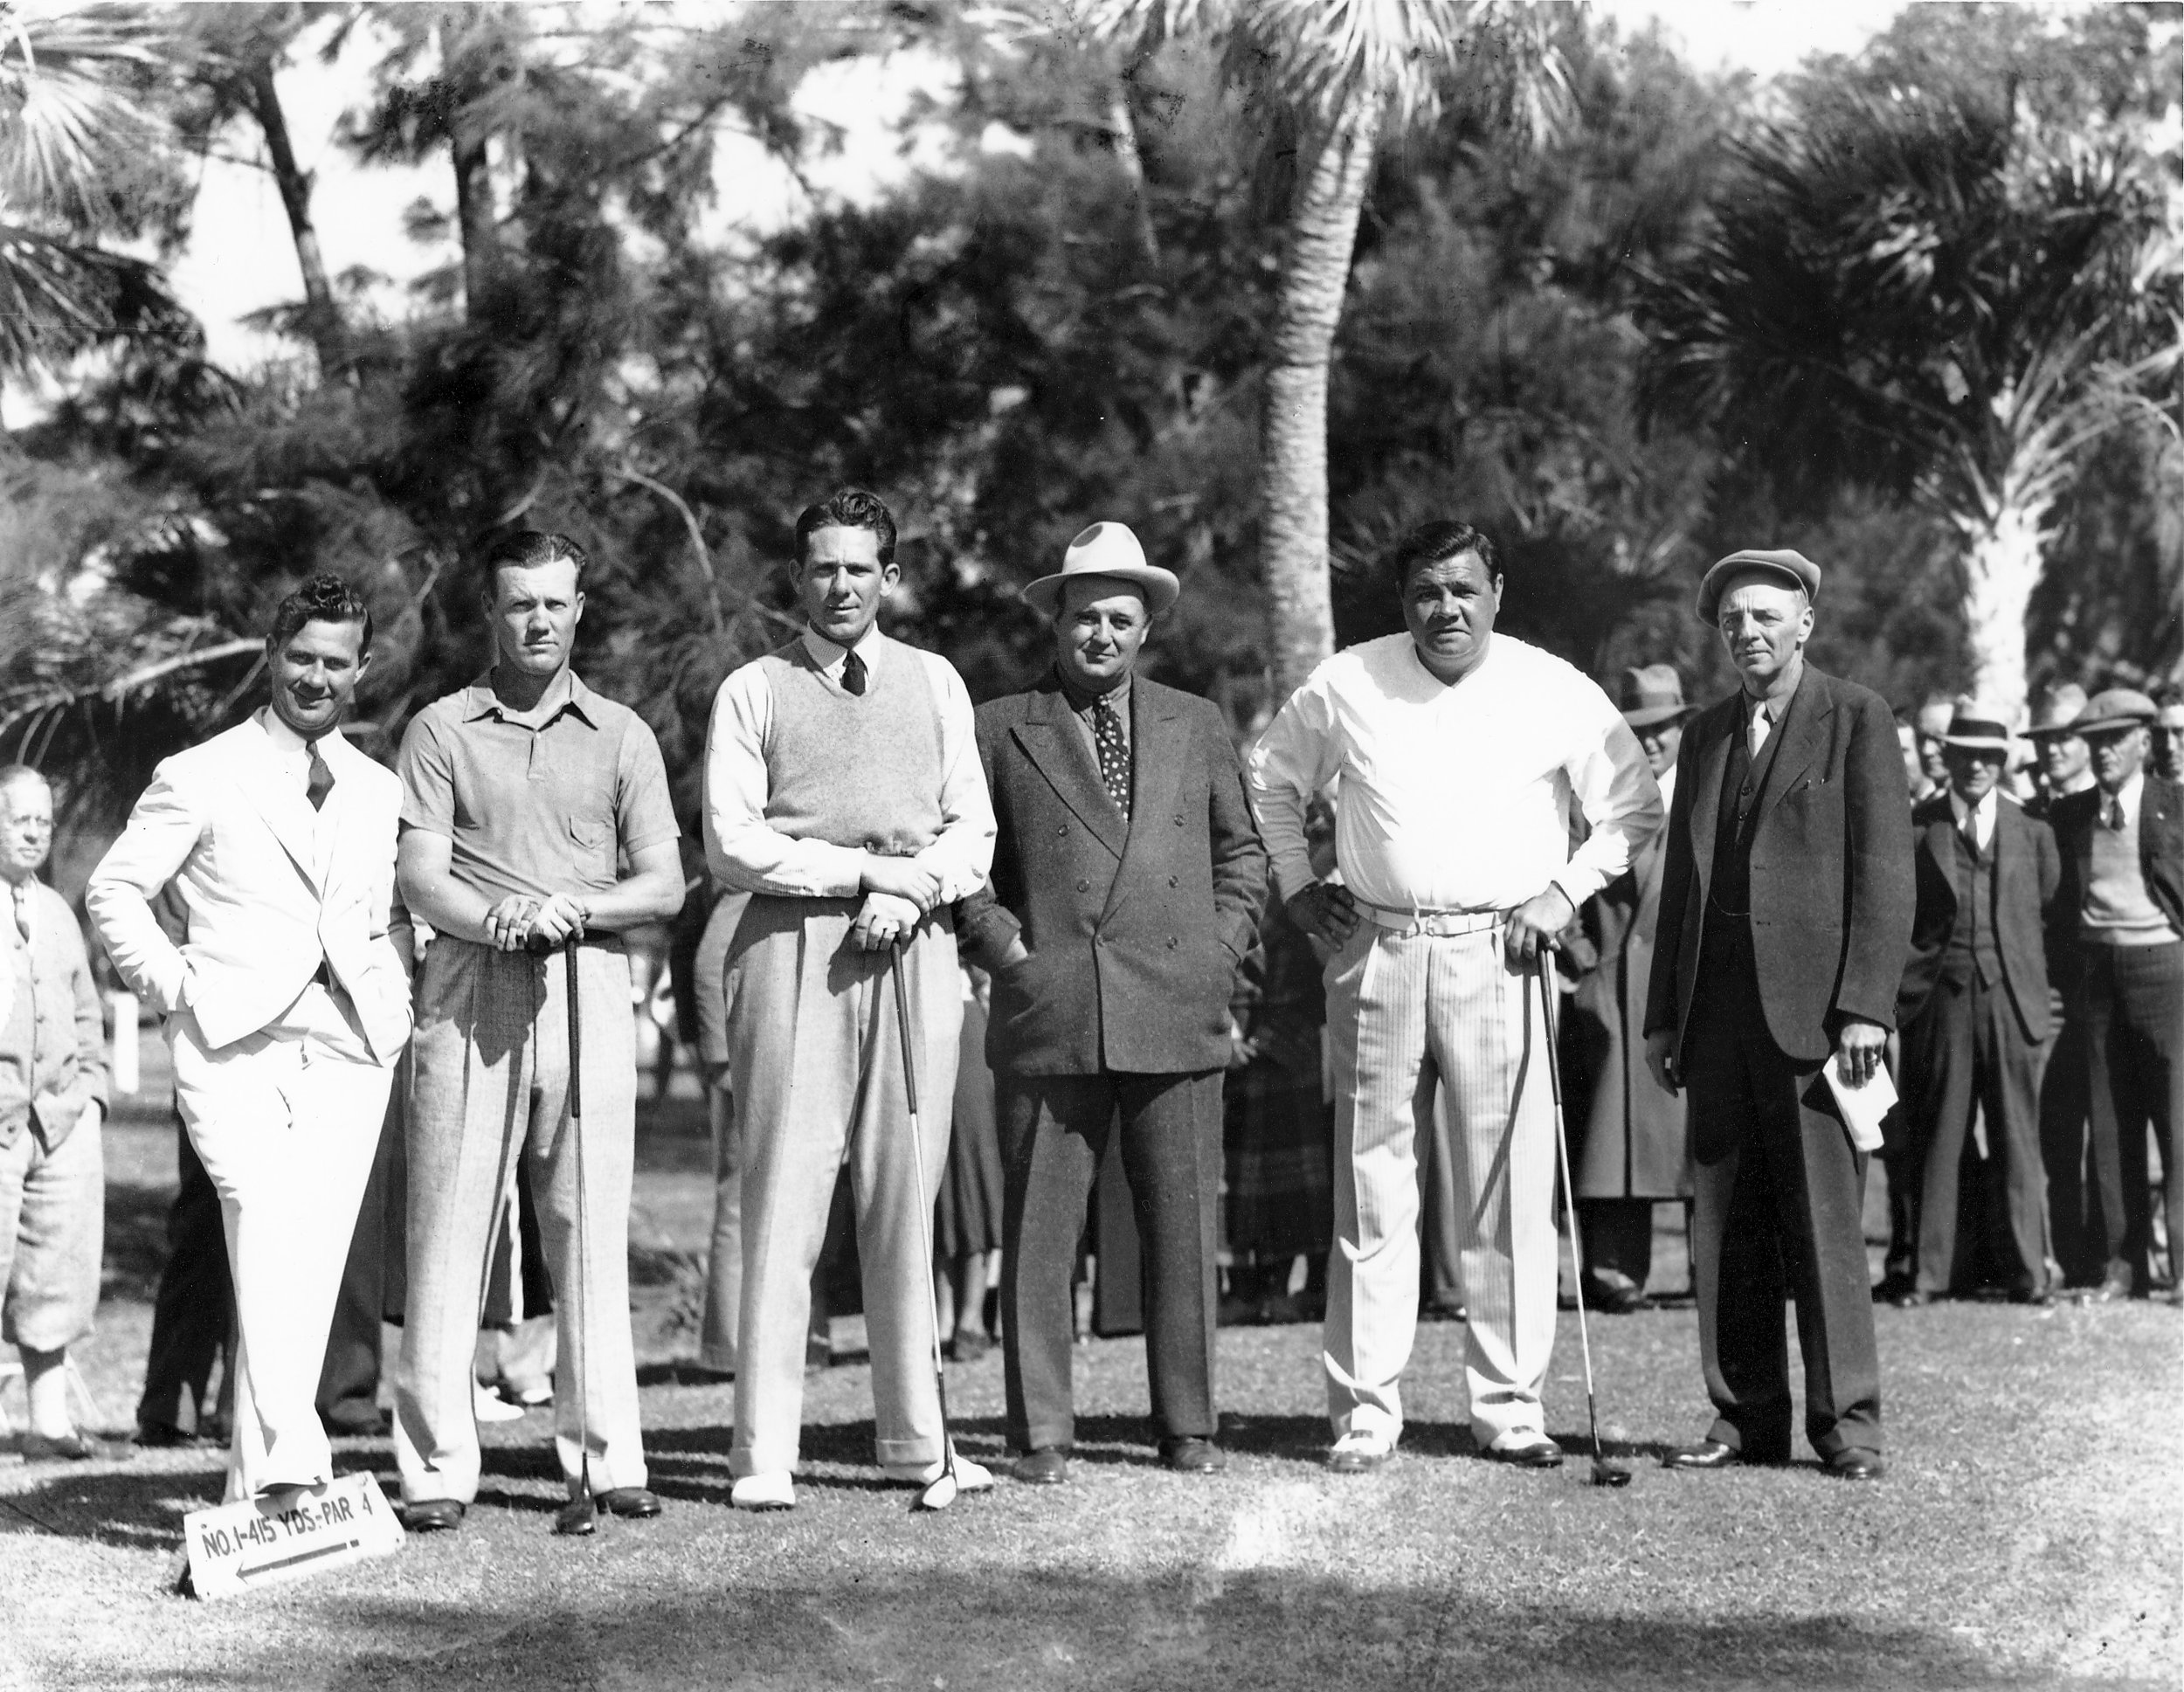 "Sunday, February 2, 1936.  On the 415 Yard, First Tee of the  Donald Ross  Course at Bobby Jones Golf Club, and ready for their 11:30 AM Tee Time in the 1936 National Baseball Players Tournament, left to right: In the background,  Atlanta Journal  sportswriter, Georgia State Golf Association Hall of Fame member and  Bobby Jones  biographer and chronicler  Oscar Bane ""O. B."" Keeler  (1882-1950); PGA of America Hall of Fame member; Bobby Jones Golf Club managing golf professional, legendary Ridgewood Country Club head professional (1919-1965), longest-serving President of the PGA of America (1932-1939) and ""golf czar"" for Major League Baseball (1934-1965)  George R. Jacobus  (1898-1965); Cleveland Indians right-handed pitching star  George Willis Hudlin  (1906-2002); Cincinnati Reds two-time World Series champion and six-time All-Star pitcher  Samuel Paul Derringer  (1906-1987); Baseball Hall of Fame left fielder  Henry Emmett ""Heinie"" Manush  (1901-1971); three-time Boston Red Sox World Series champion and four-time New York Yankees World Series champion, Baseball Hall of Fame member, and Major League Baseball All-Century and All-Time teams member  George Herman ""Babe"" Ruth, Jr. , (1895-1948).  At far right is an individual for you to identify (Bobby Jones Golf Club Caddy Master Ray Jamieson? Assistant Professional Al Nelson?).  In the background, right, in dark-banded light fedora, is legendary sportswriter and poet  Henry Grantland Rice  (1880-1954) who wrote, …"" not that you won or lost - But how you played the Game ."" Between Ruth and the unidentified gentleman, in spectator background, in full-length overcoat, appears to be Hearst Newspapers sports columnist  Henry McLemore ."